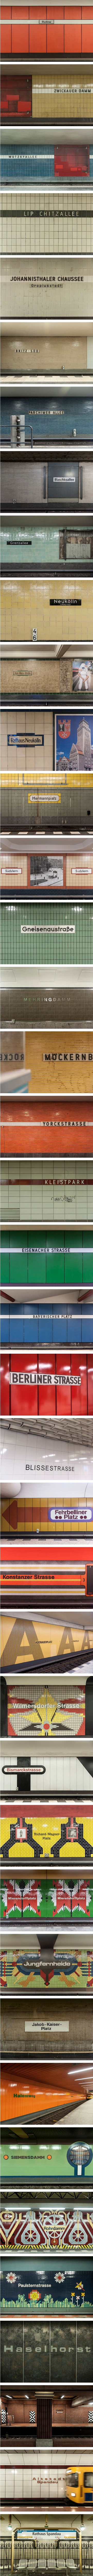 ღღ Meine Linie !  ~~~ U7 station names from Rudow to Rathaus Spandau, by Kate Seabrook. (Photo by Kate Seabrook. All Rights Reserved).